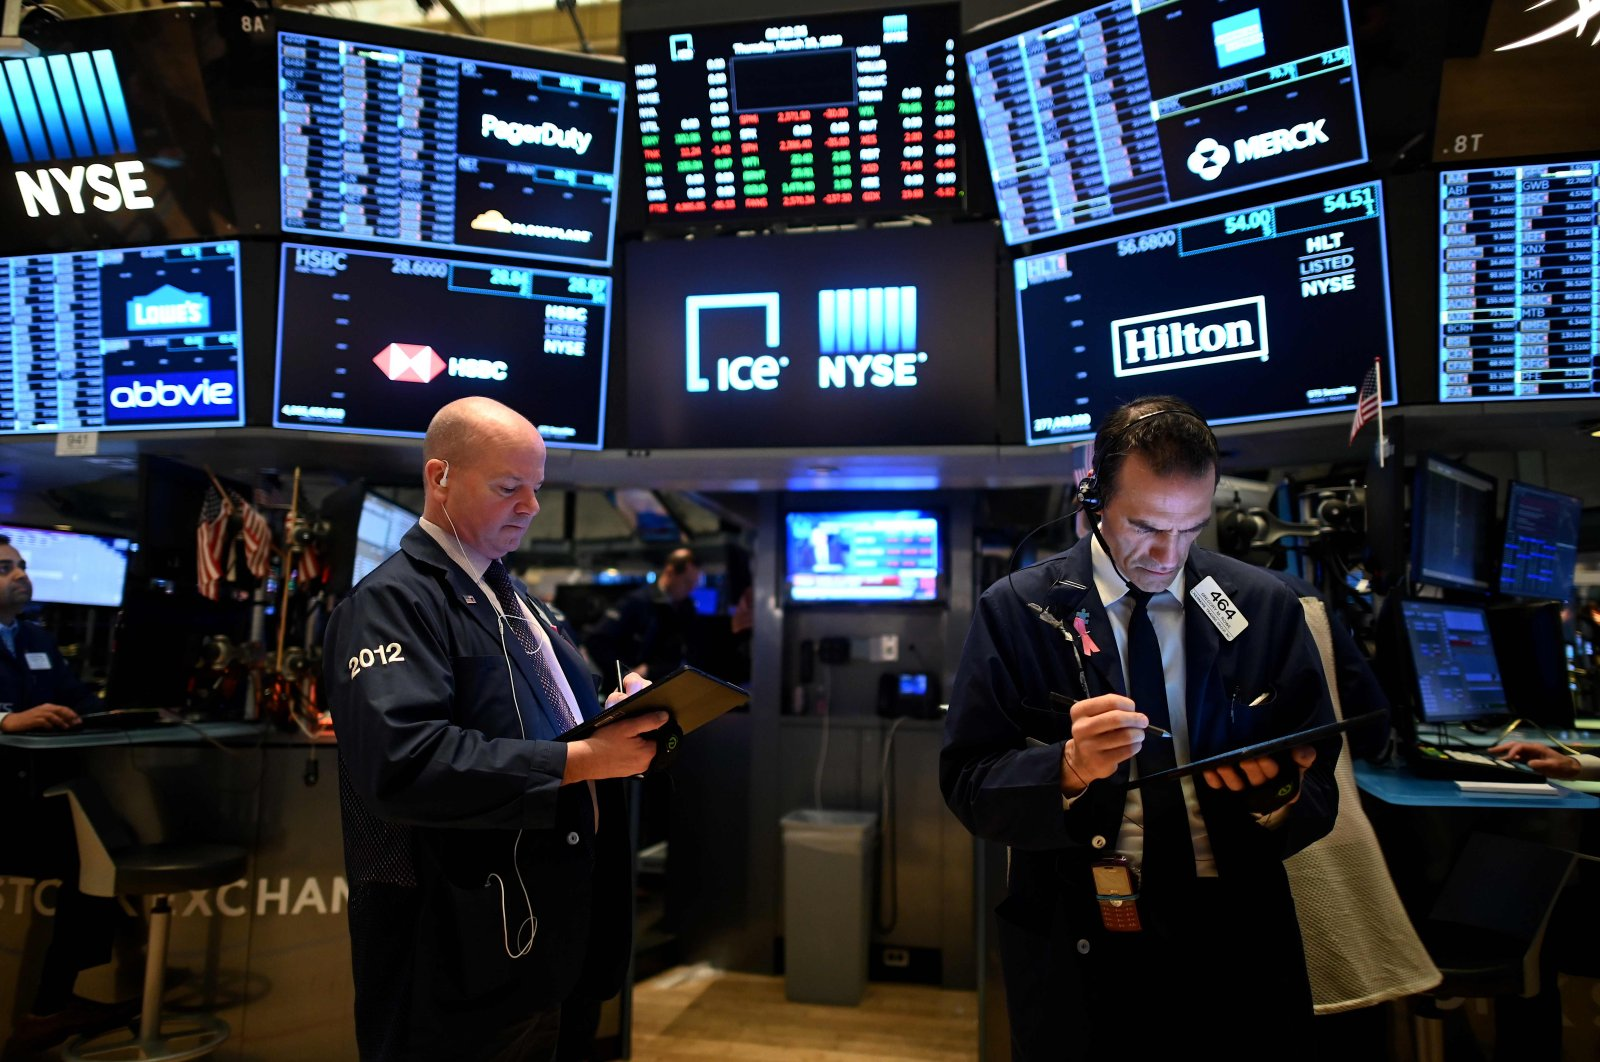 Traders work during the opening bell at the New York Stock Exchange (NYSE), Wall Street, New York City, March 19, 2020. (AFP Photo)